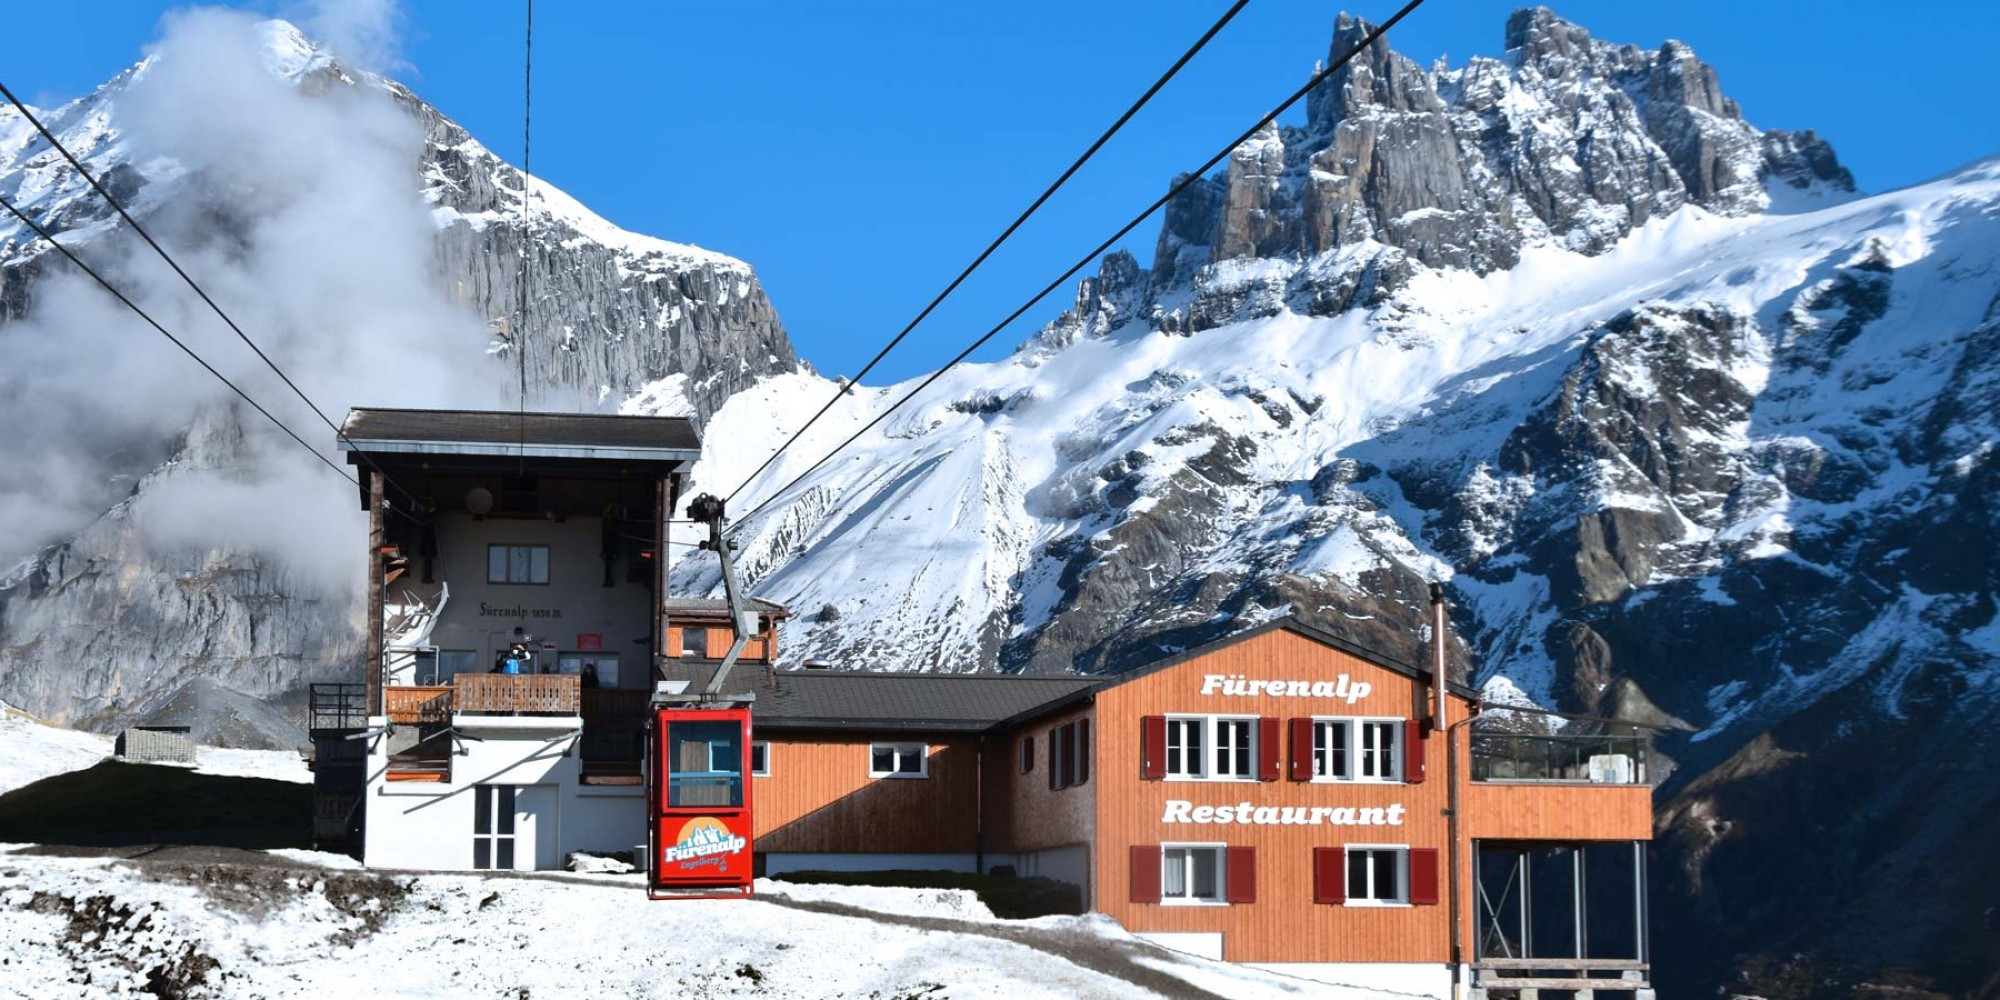 Engelberg_Fuerenalp_Restaurant_Station_Winter_1_1.jpg